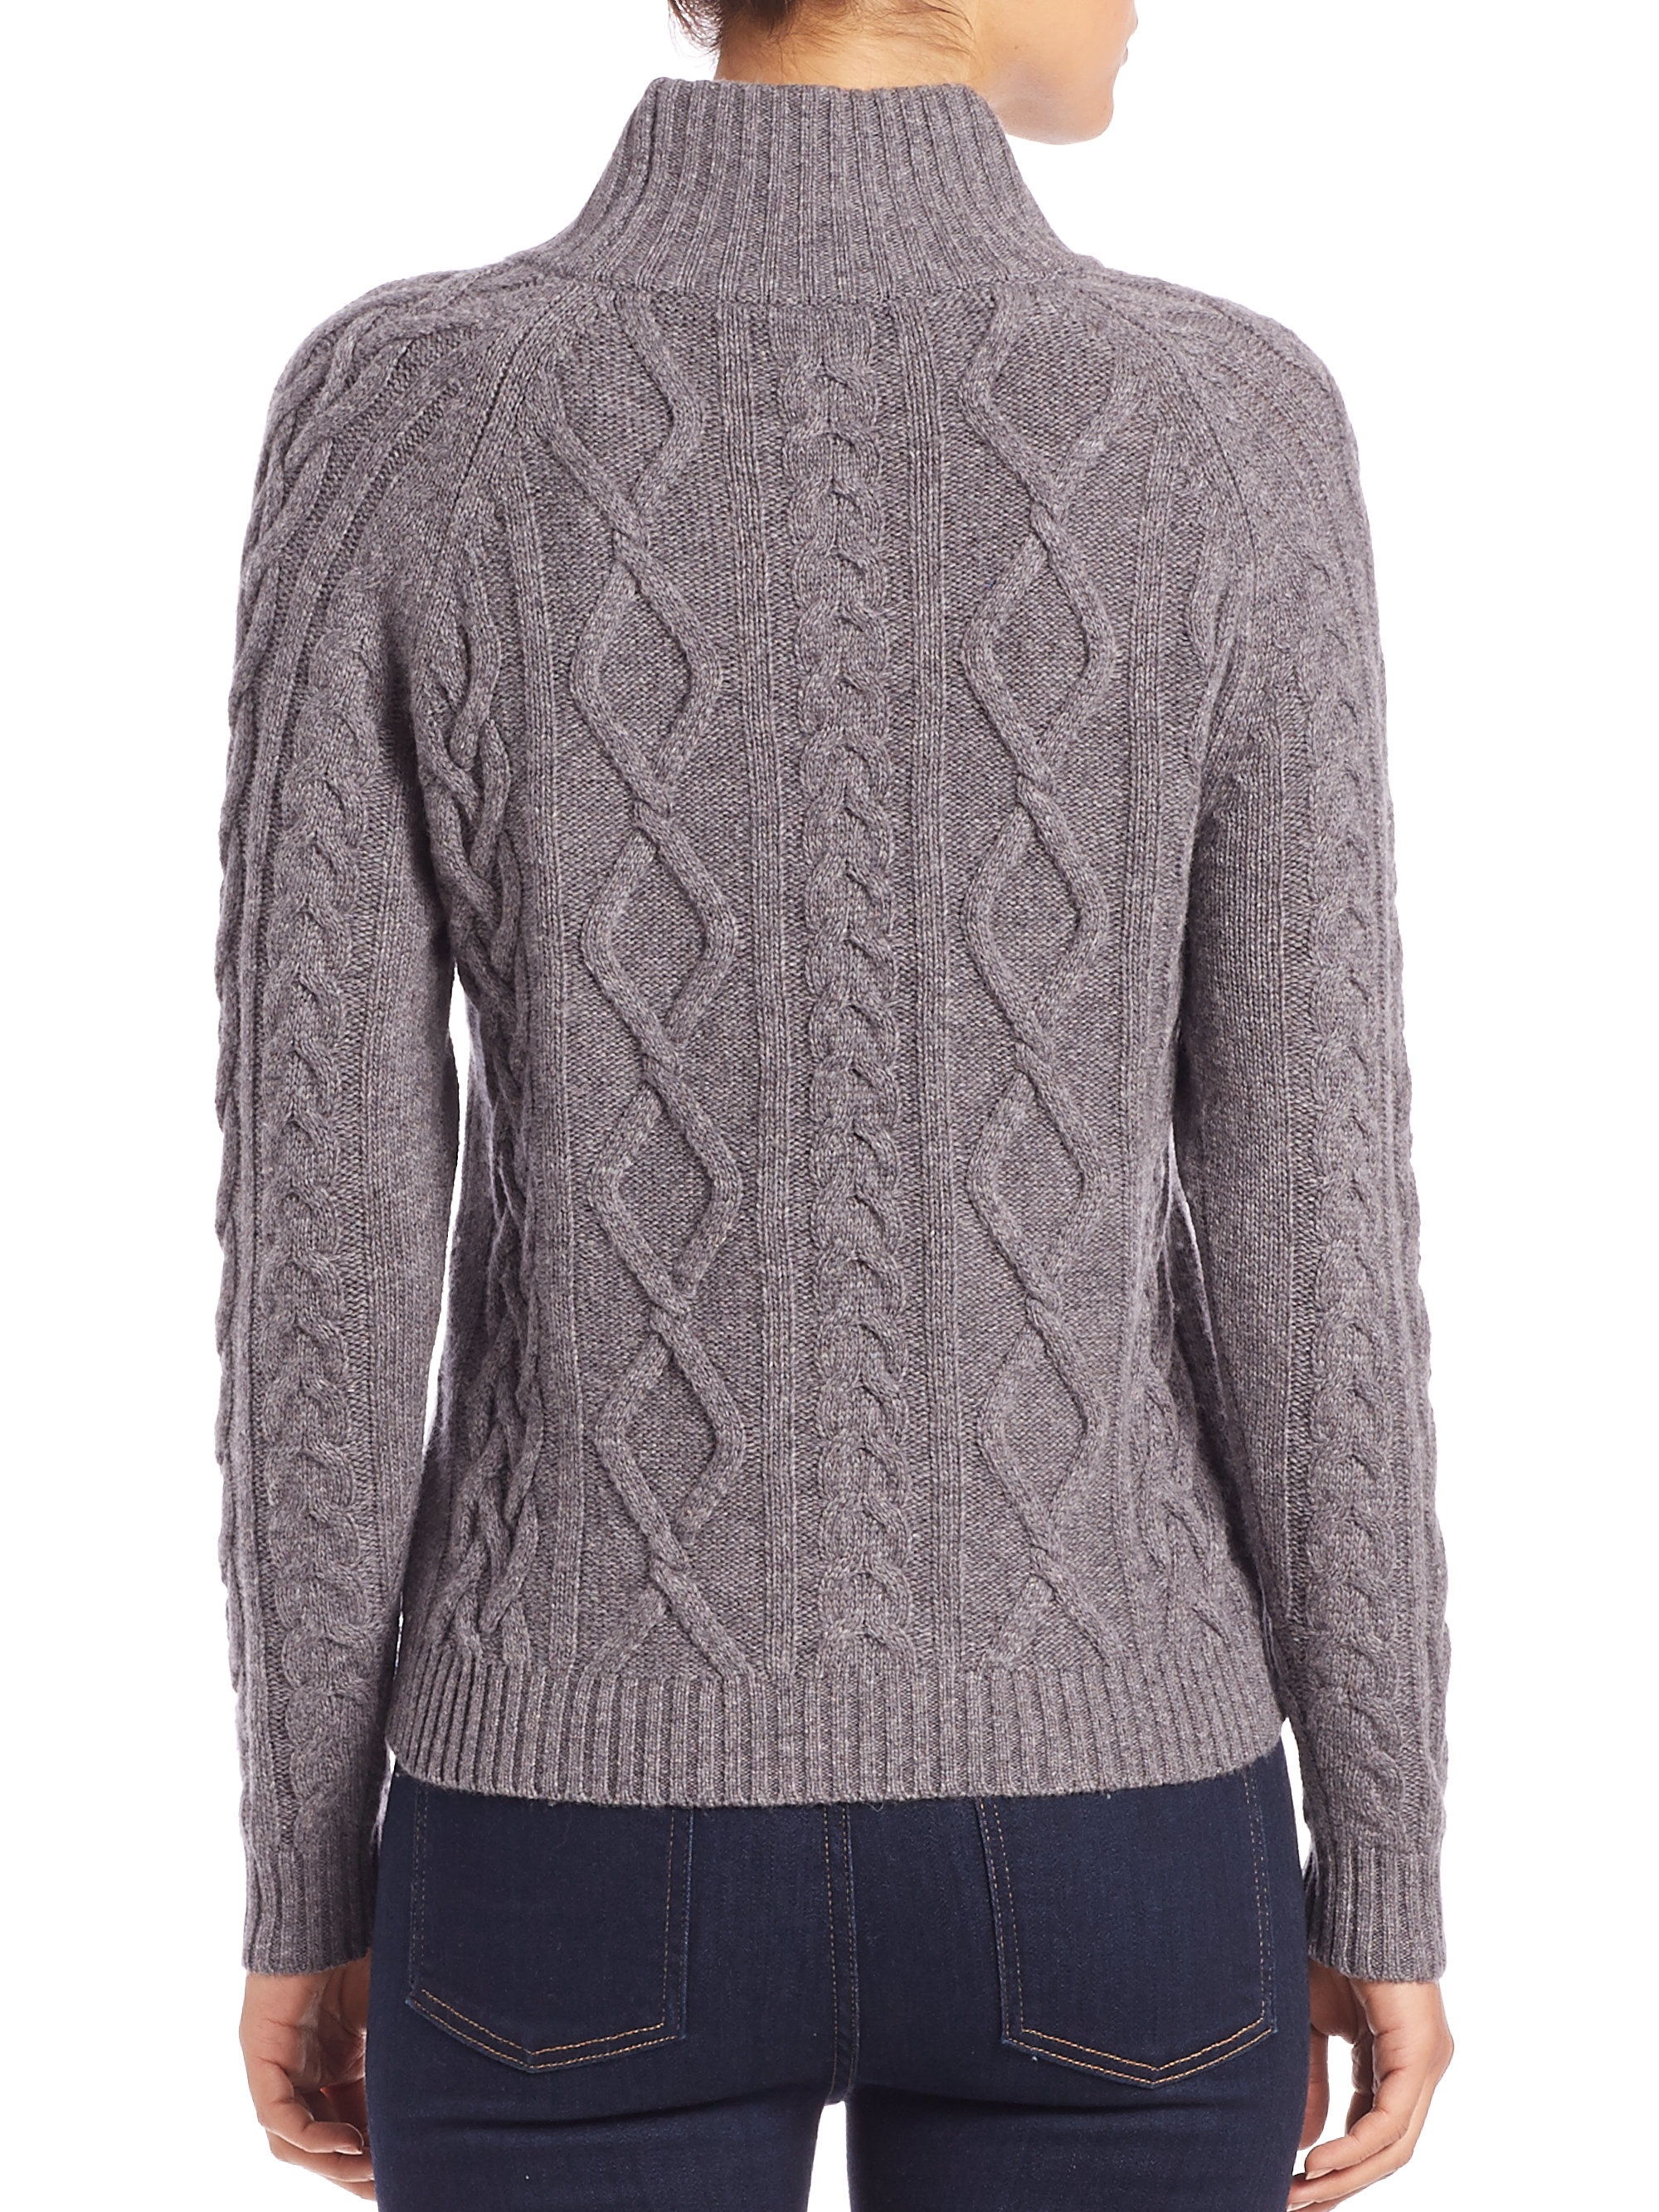 Weekend by maxmara Utopia Cable-knit Turtleneck Sweater in Gray | Lyst